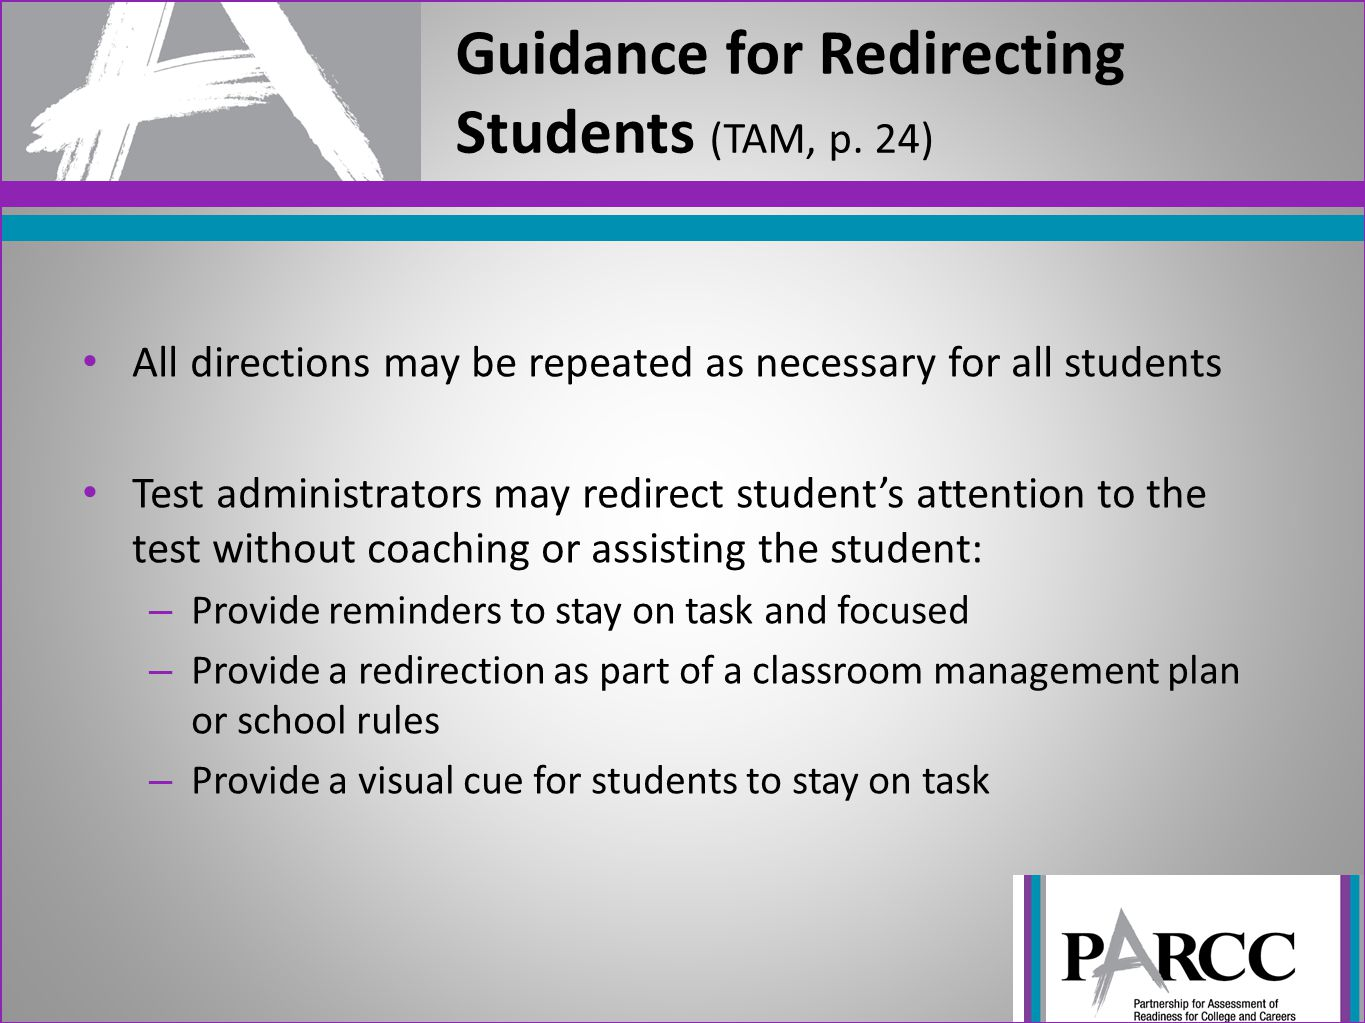 Guidance for Redirecting Students (TAM, p. 24)